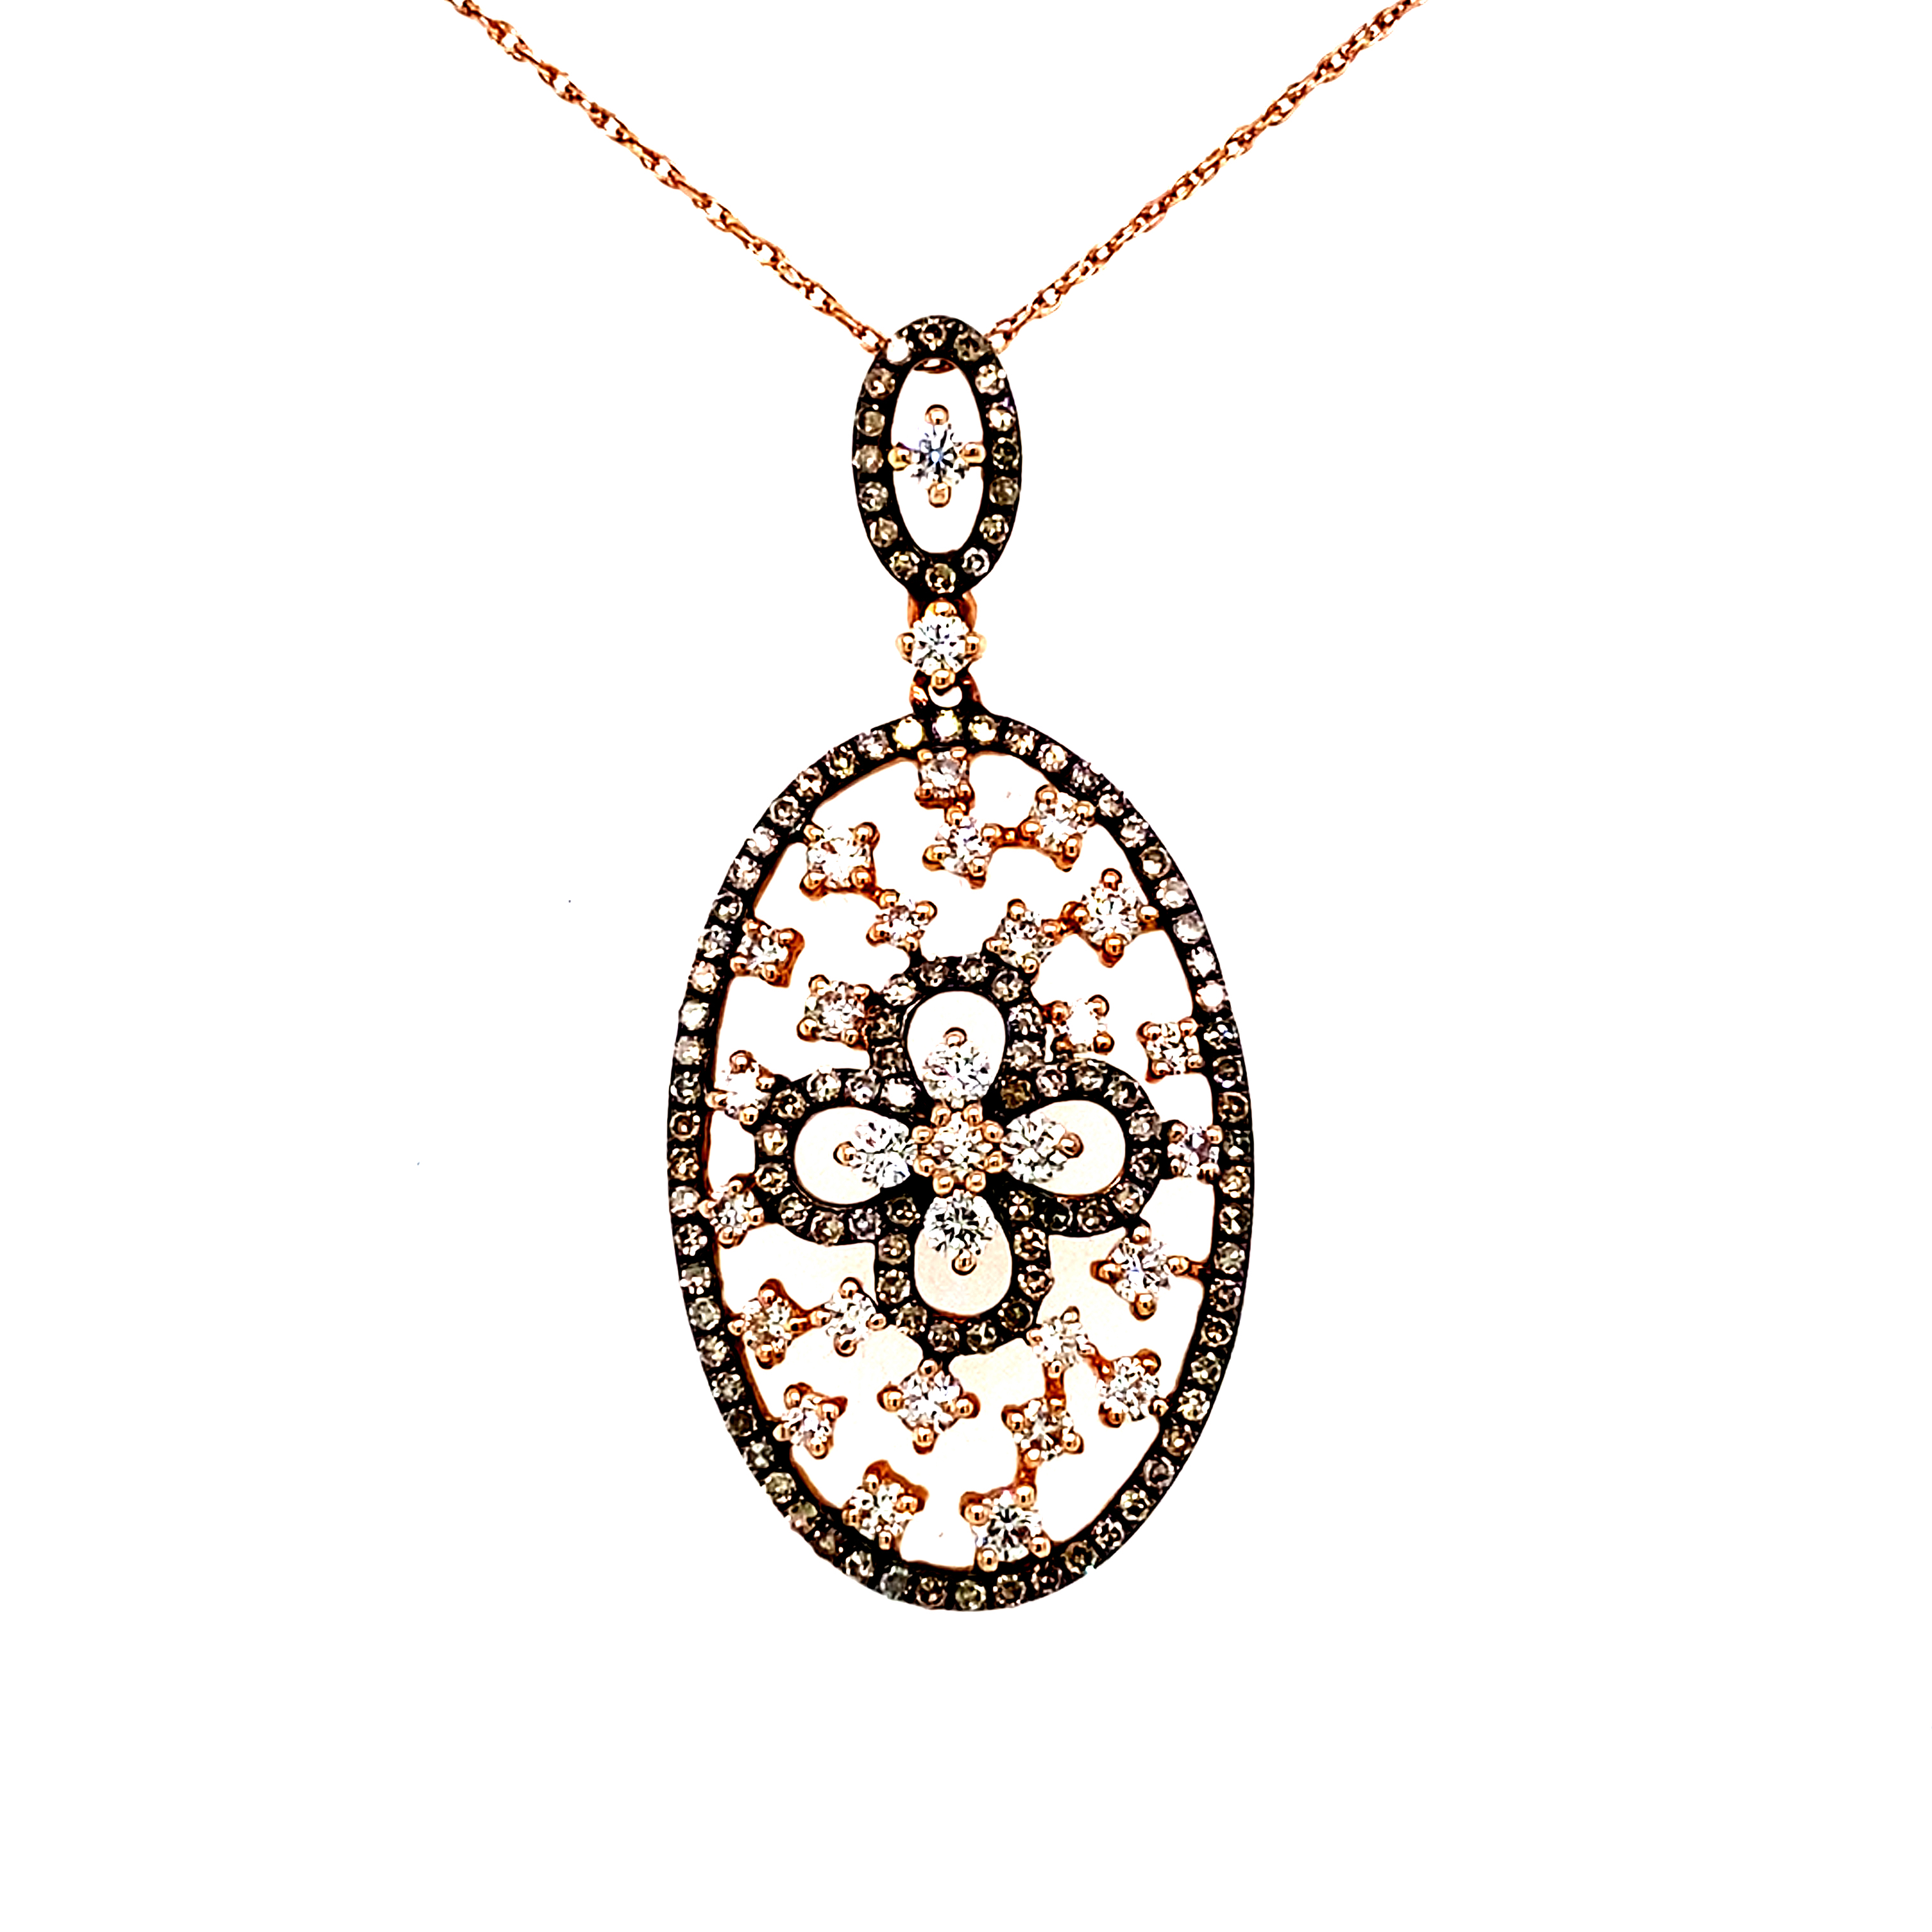 14 Carat Rose Gold with Cognac and White Diamond Oval Pendant